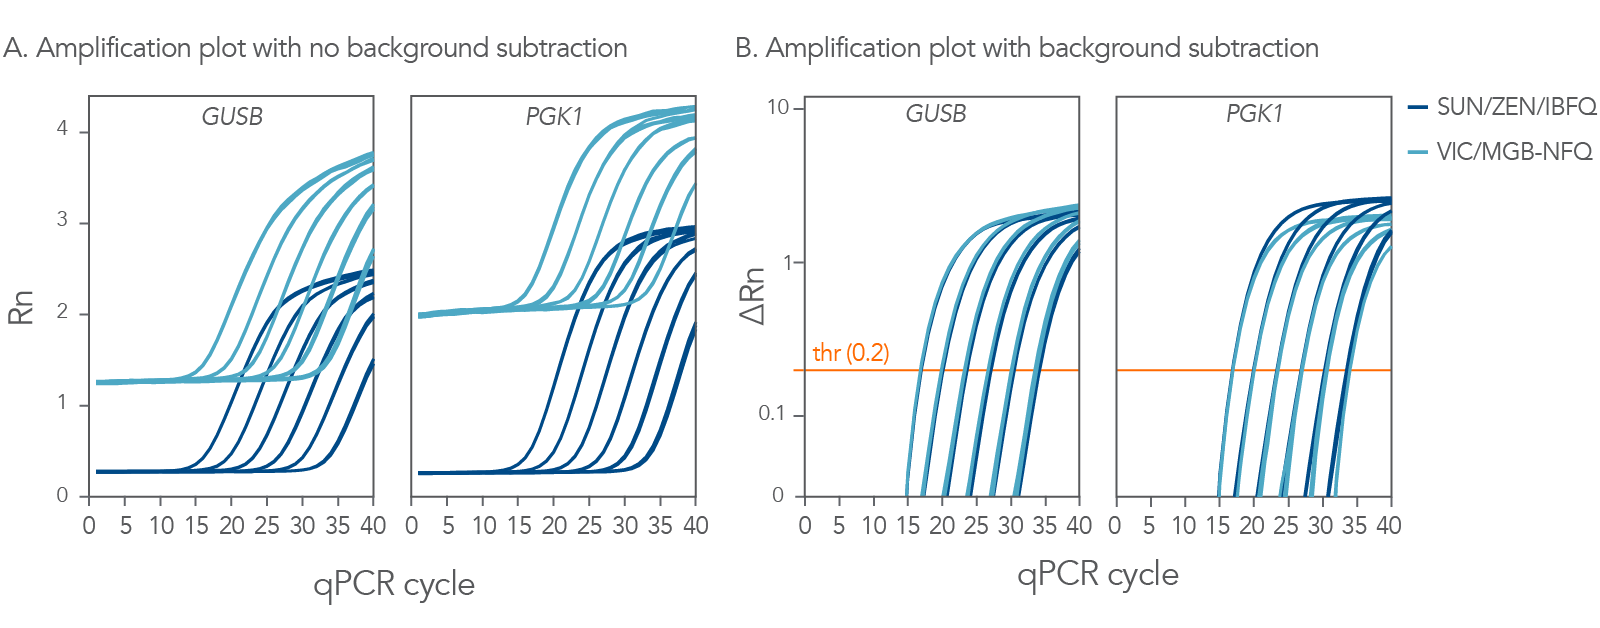 qPCR analysis using SUN and VIC labeled qPCR probes show comparable results